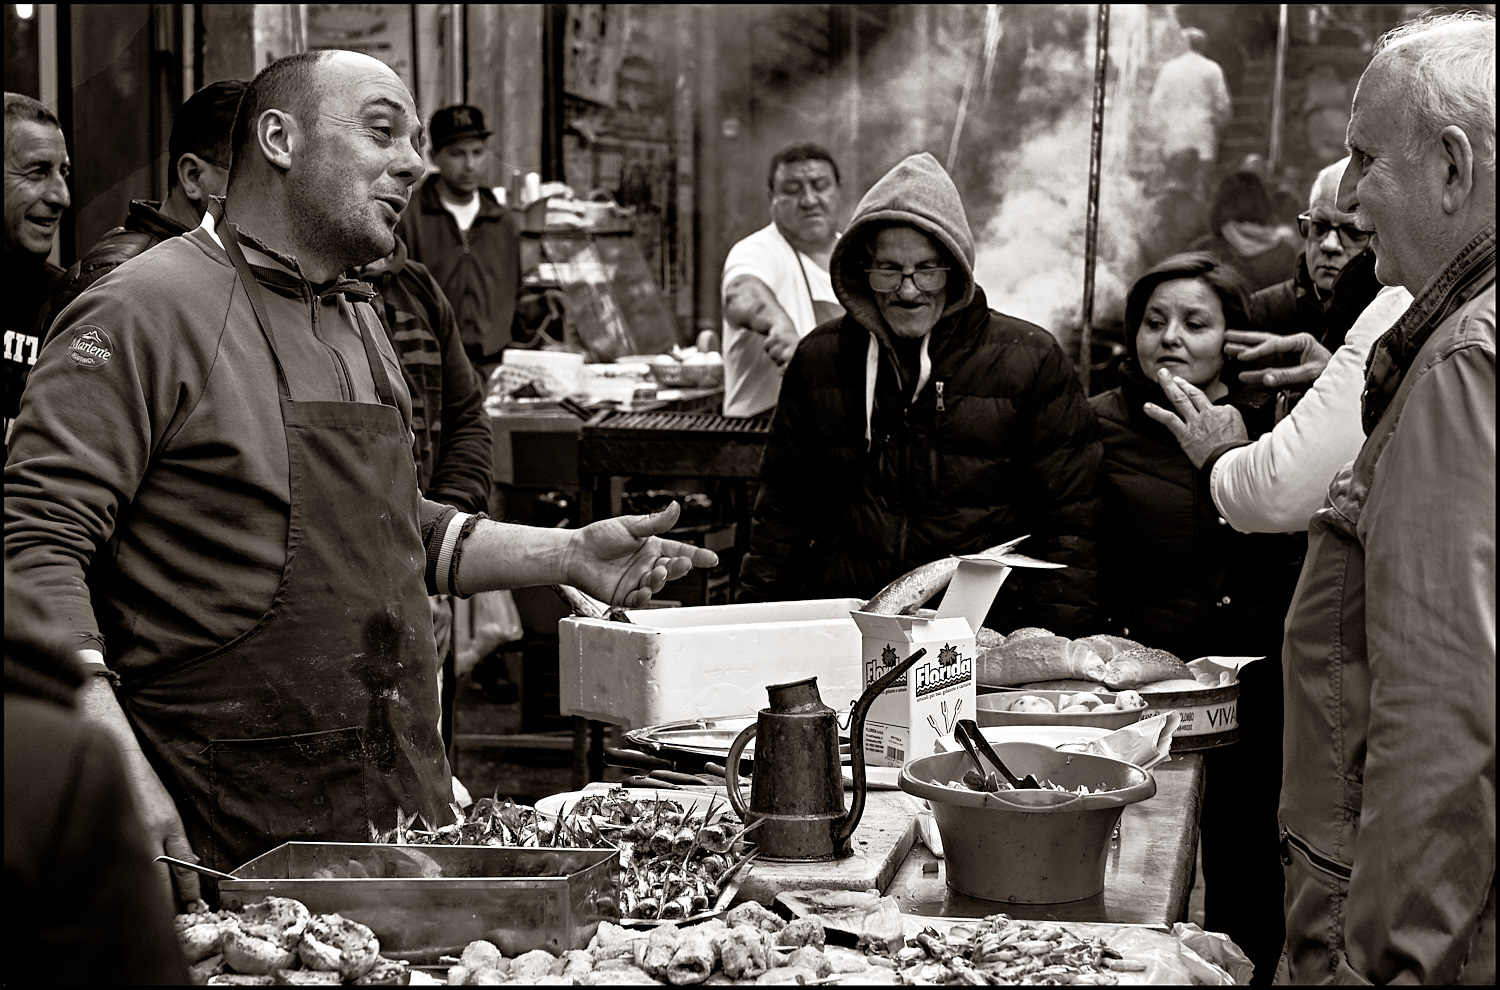 At the snackbar, Palermo style...